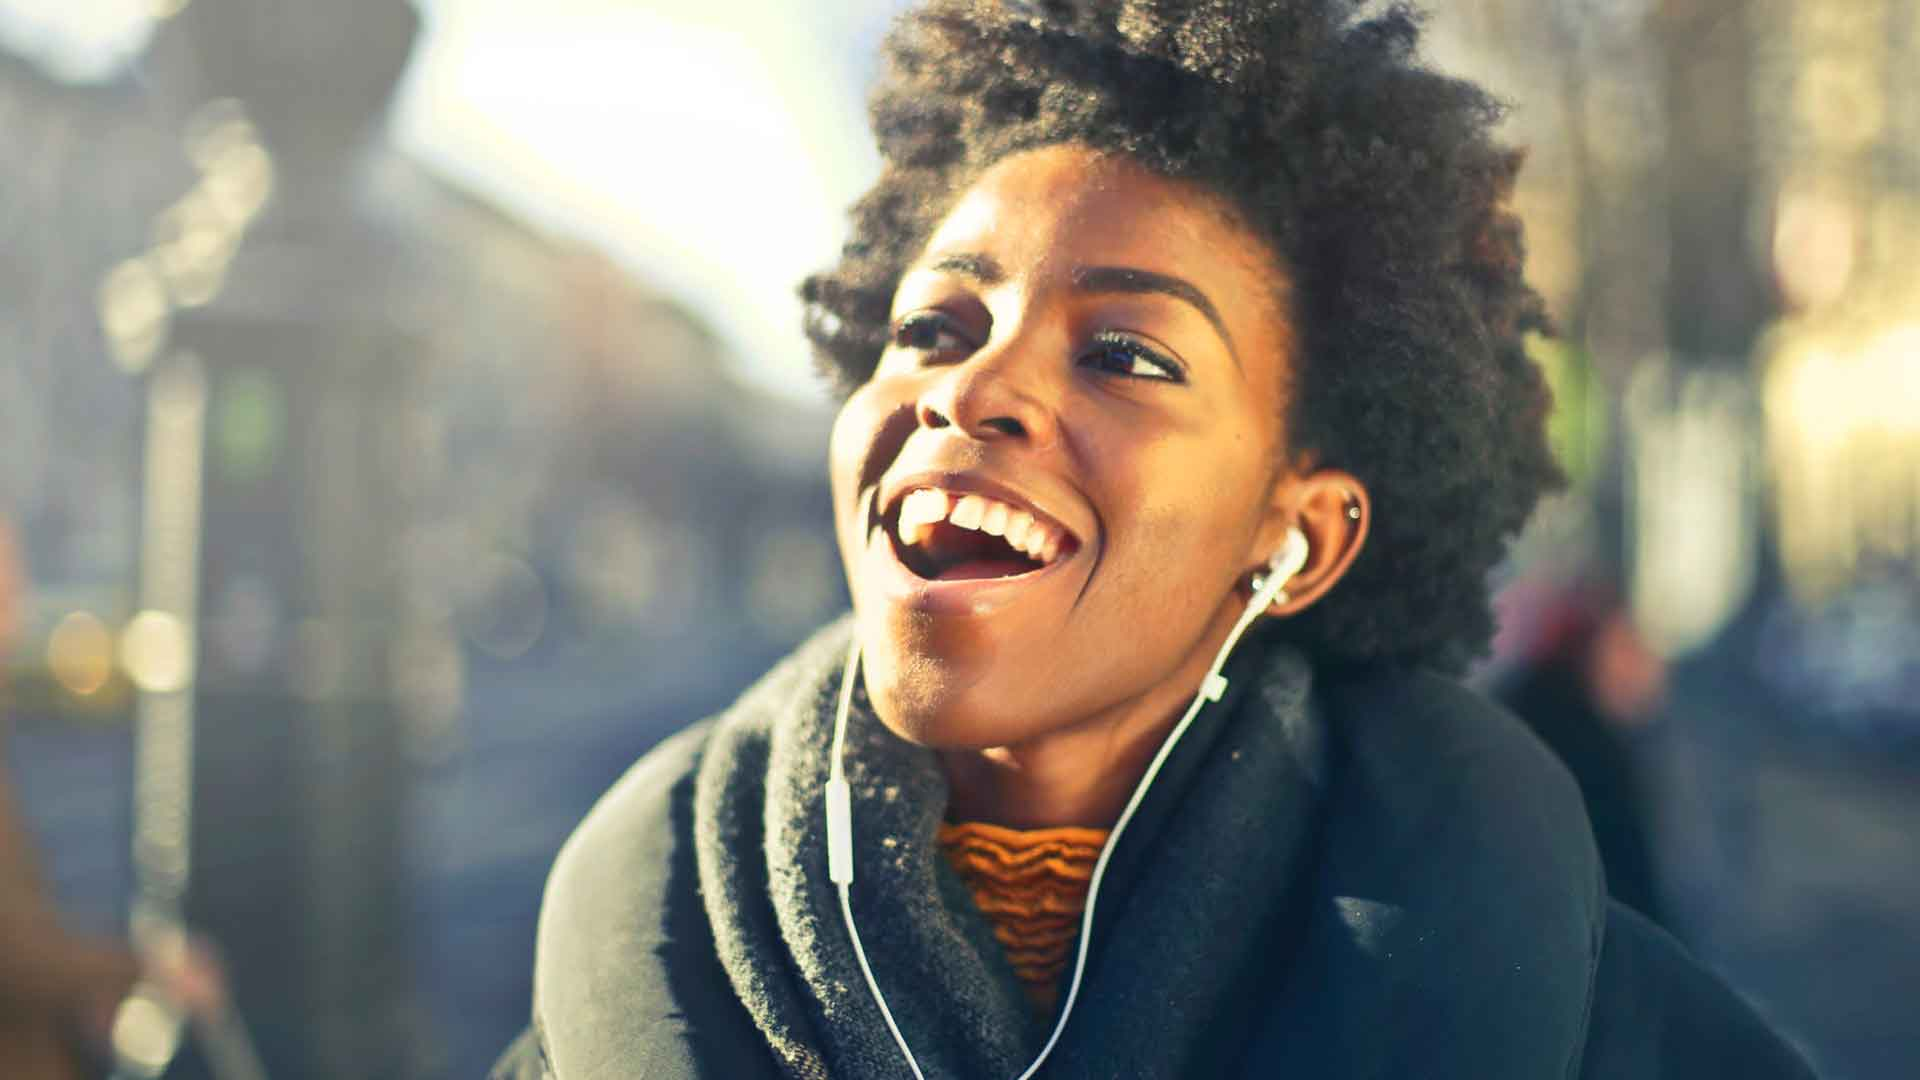 6 Podcasts to Get You Through Holiday Travel This Year